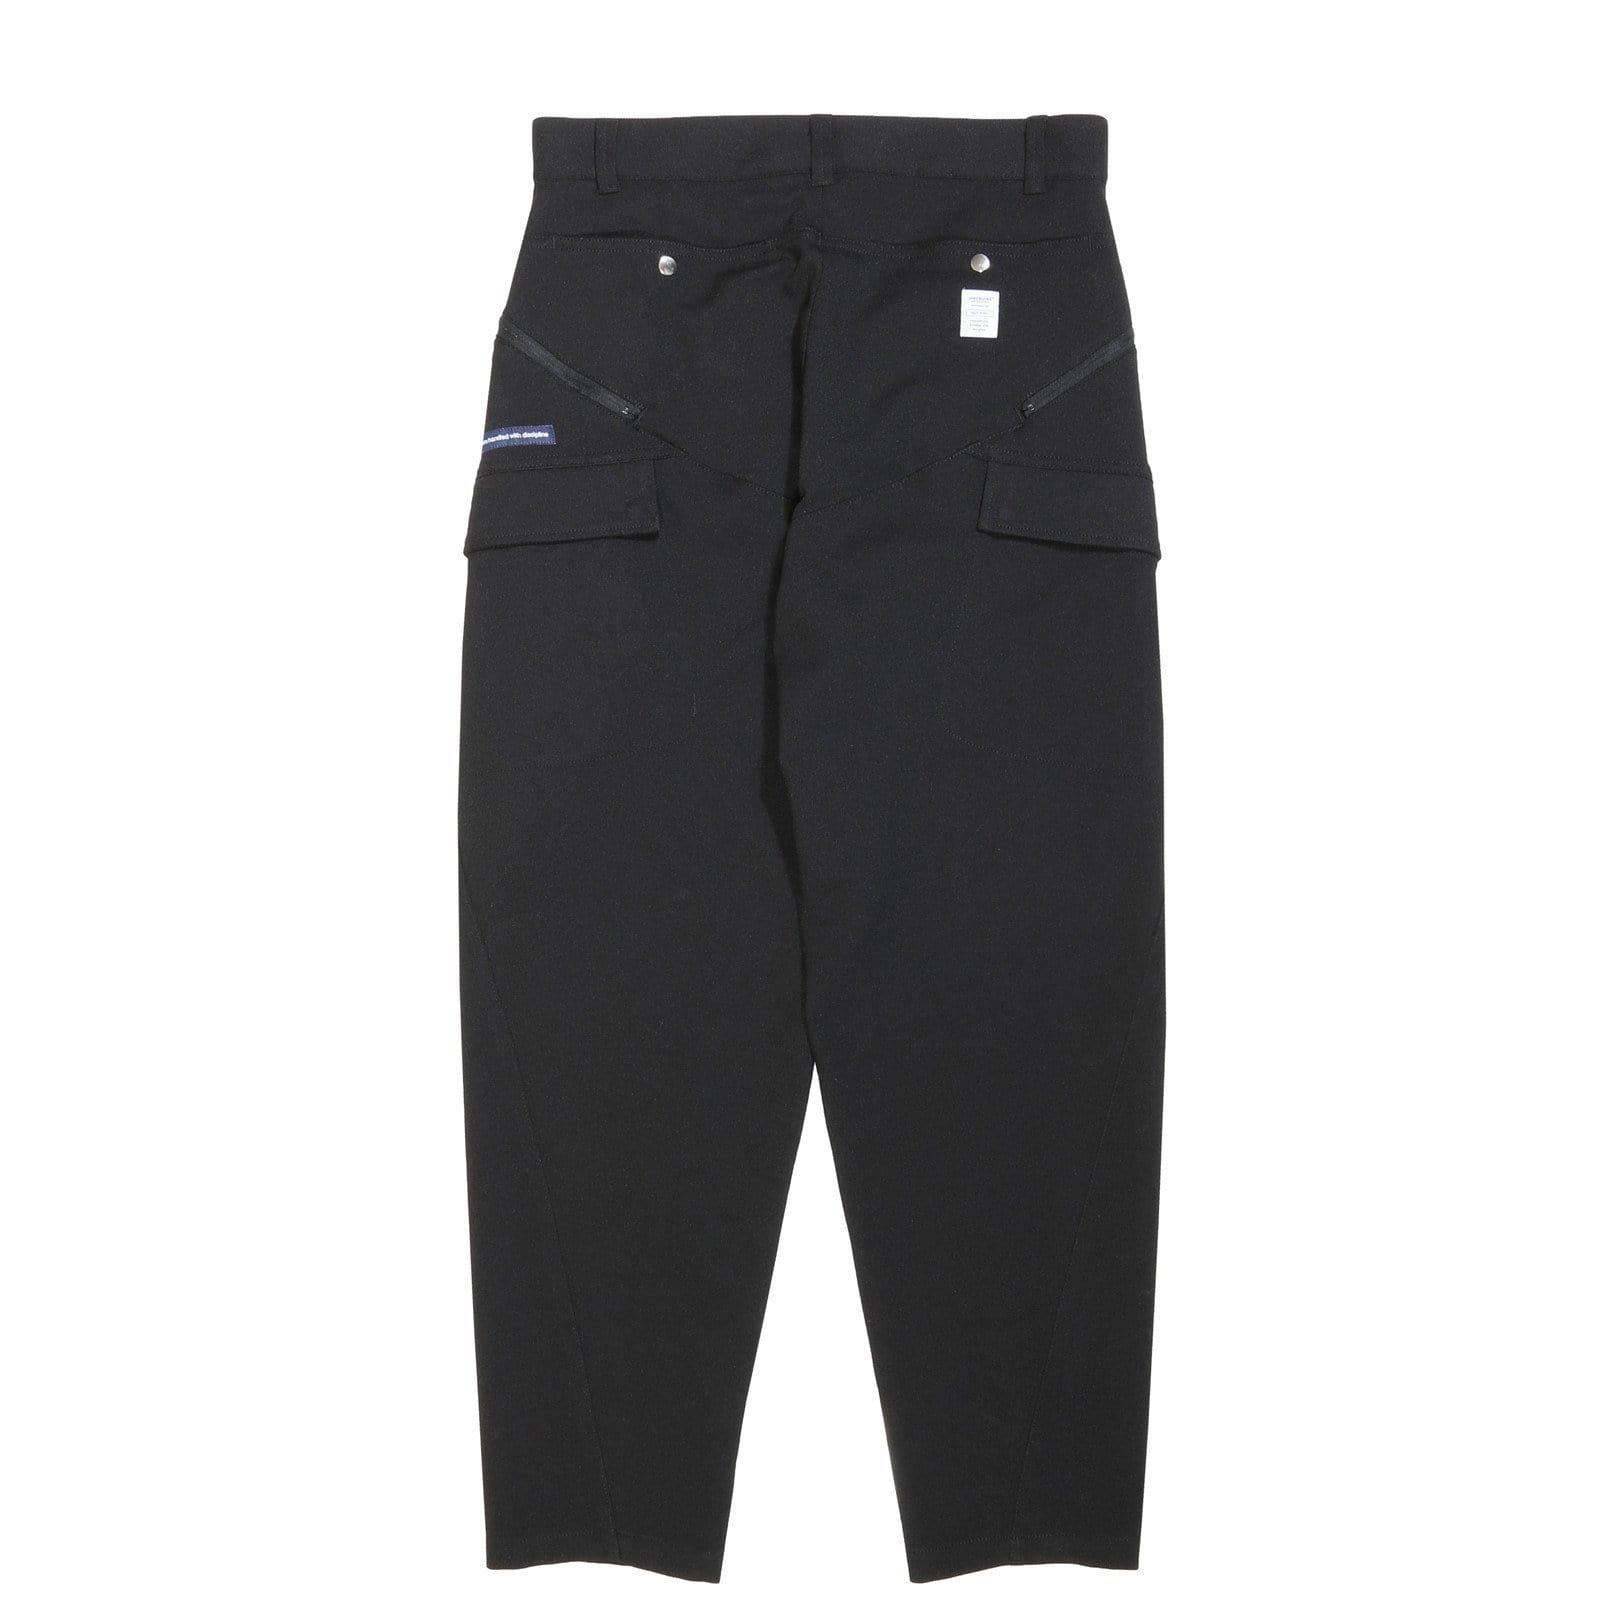 Undercover Bottoms UCS4511 PANTS